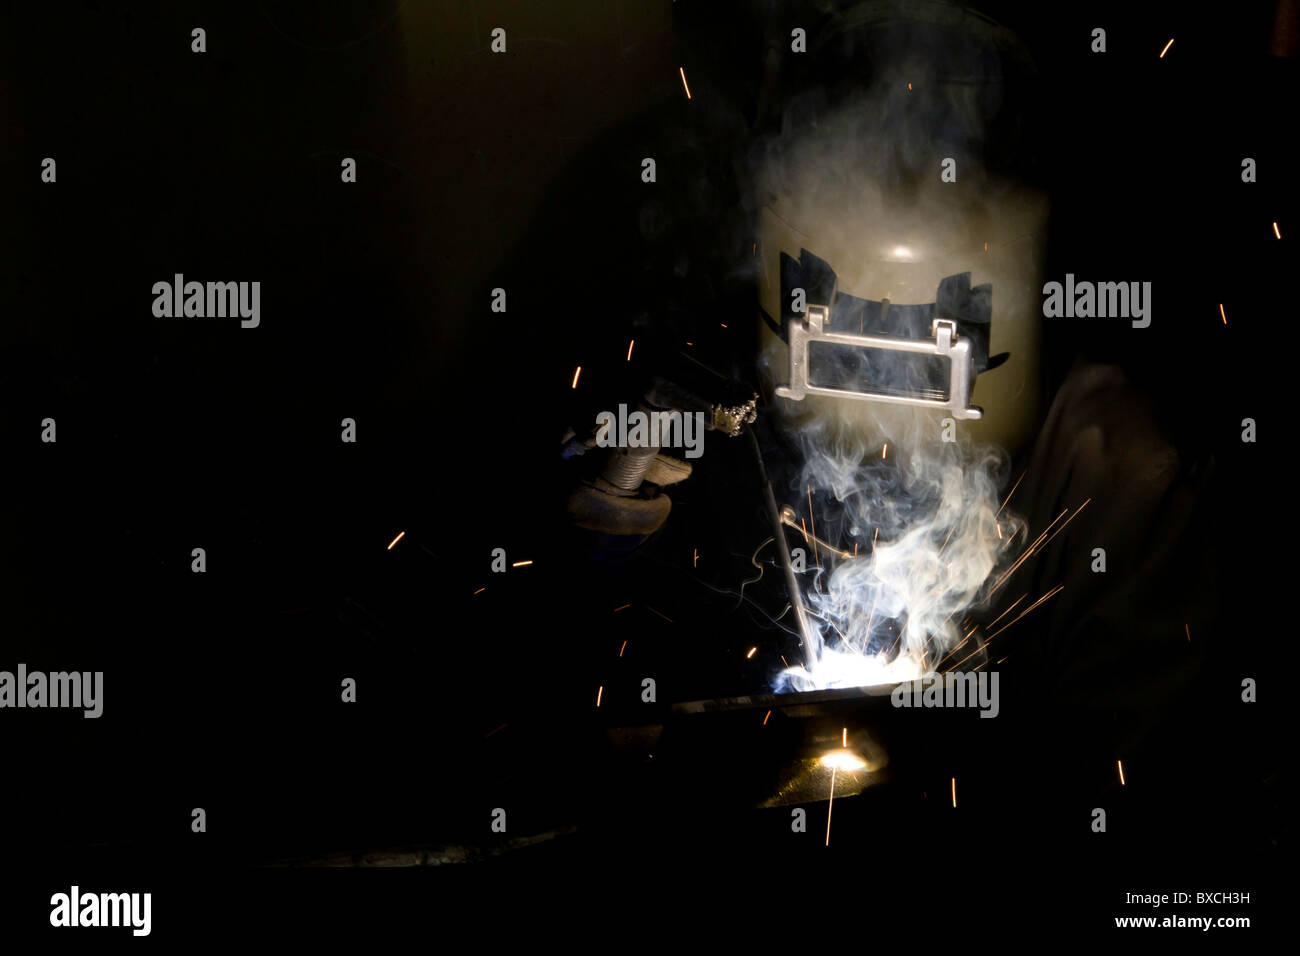 Welder lit up by welding flash, background shrouded in darkness. Good ad copy space. - Stock Image